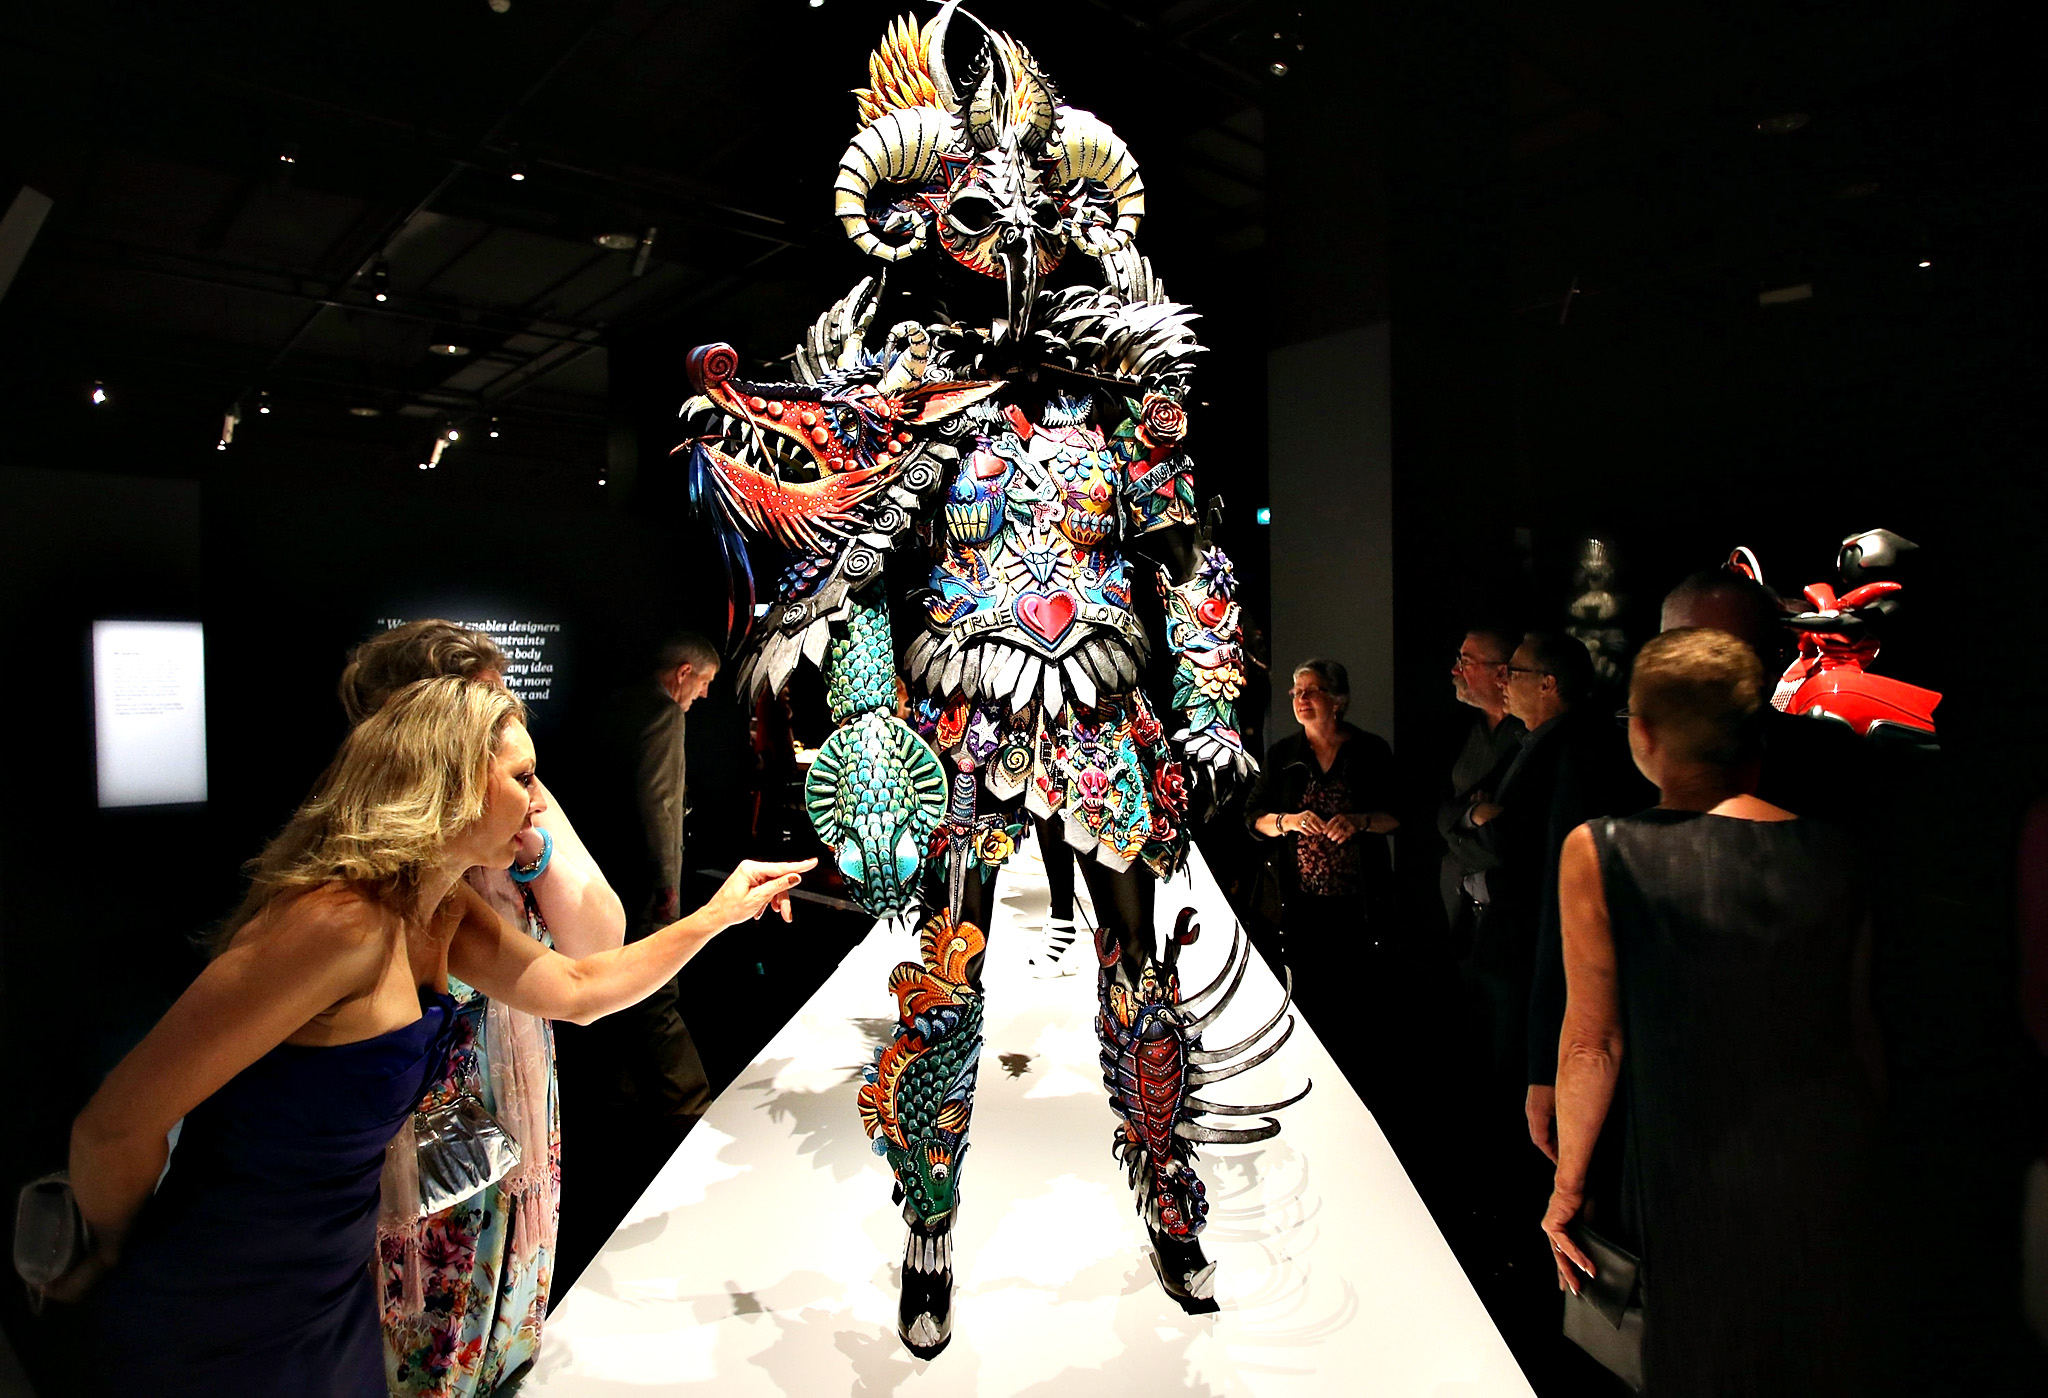 Guests look at the exhibits on show at the Auckland War Memorial Museum's World of Wearable Art (WOW) exhibition opening at Auckland Museum on November 20, 2014 in Auckland, New Zealand.